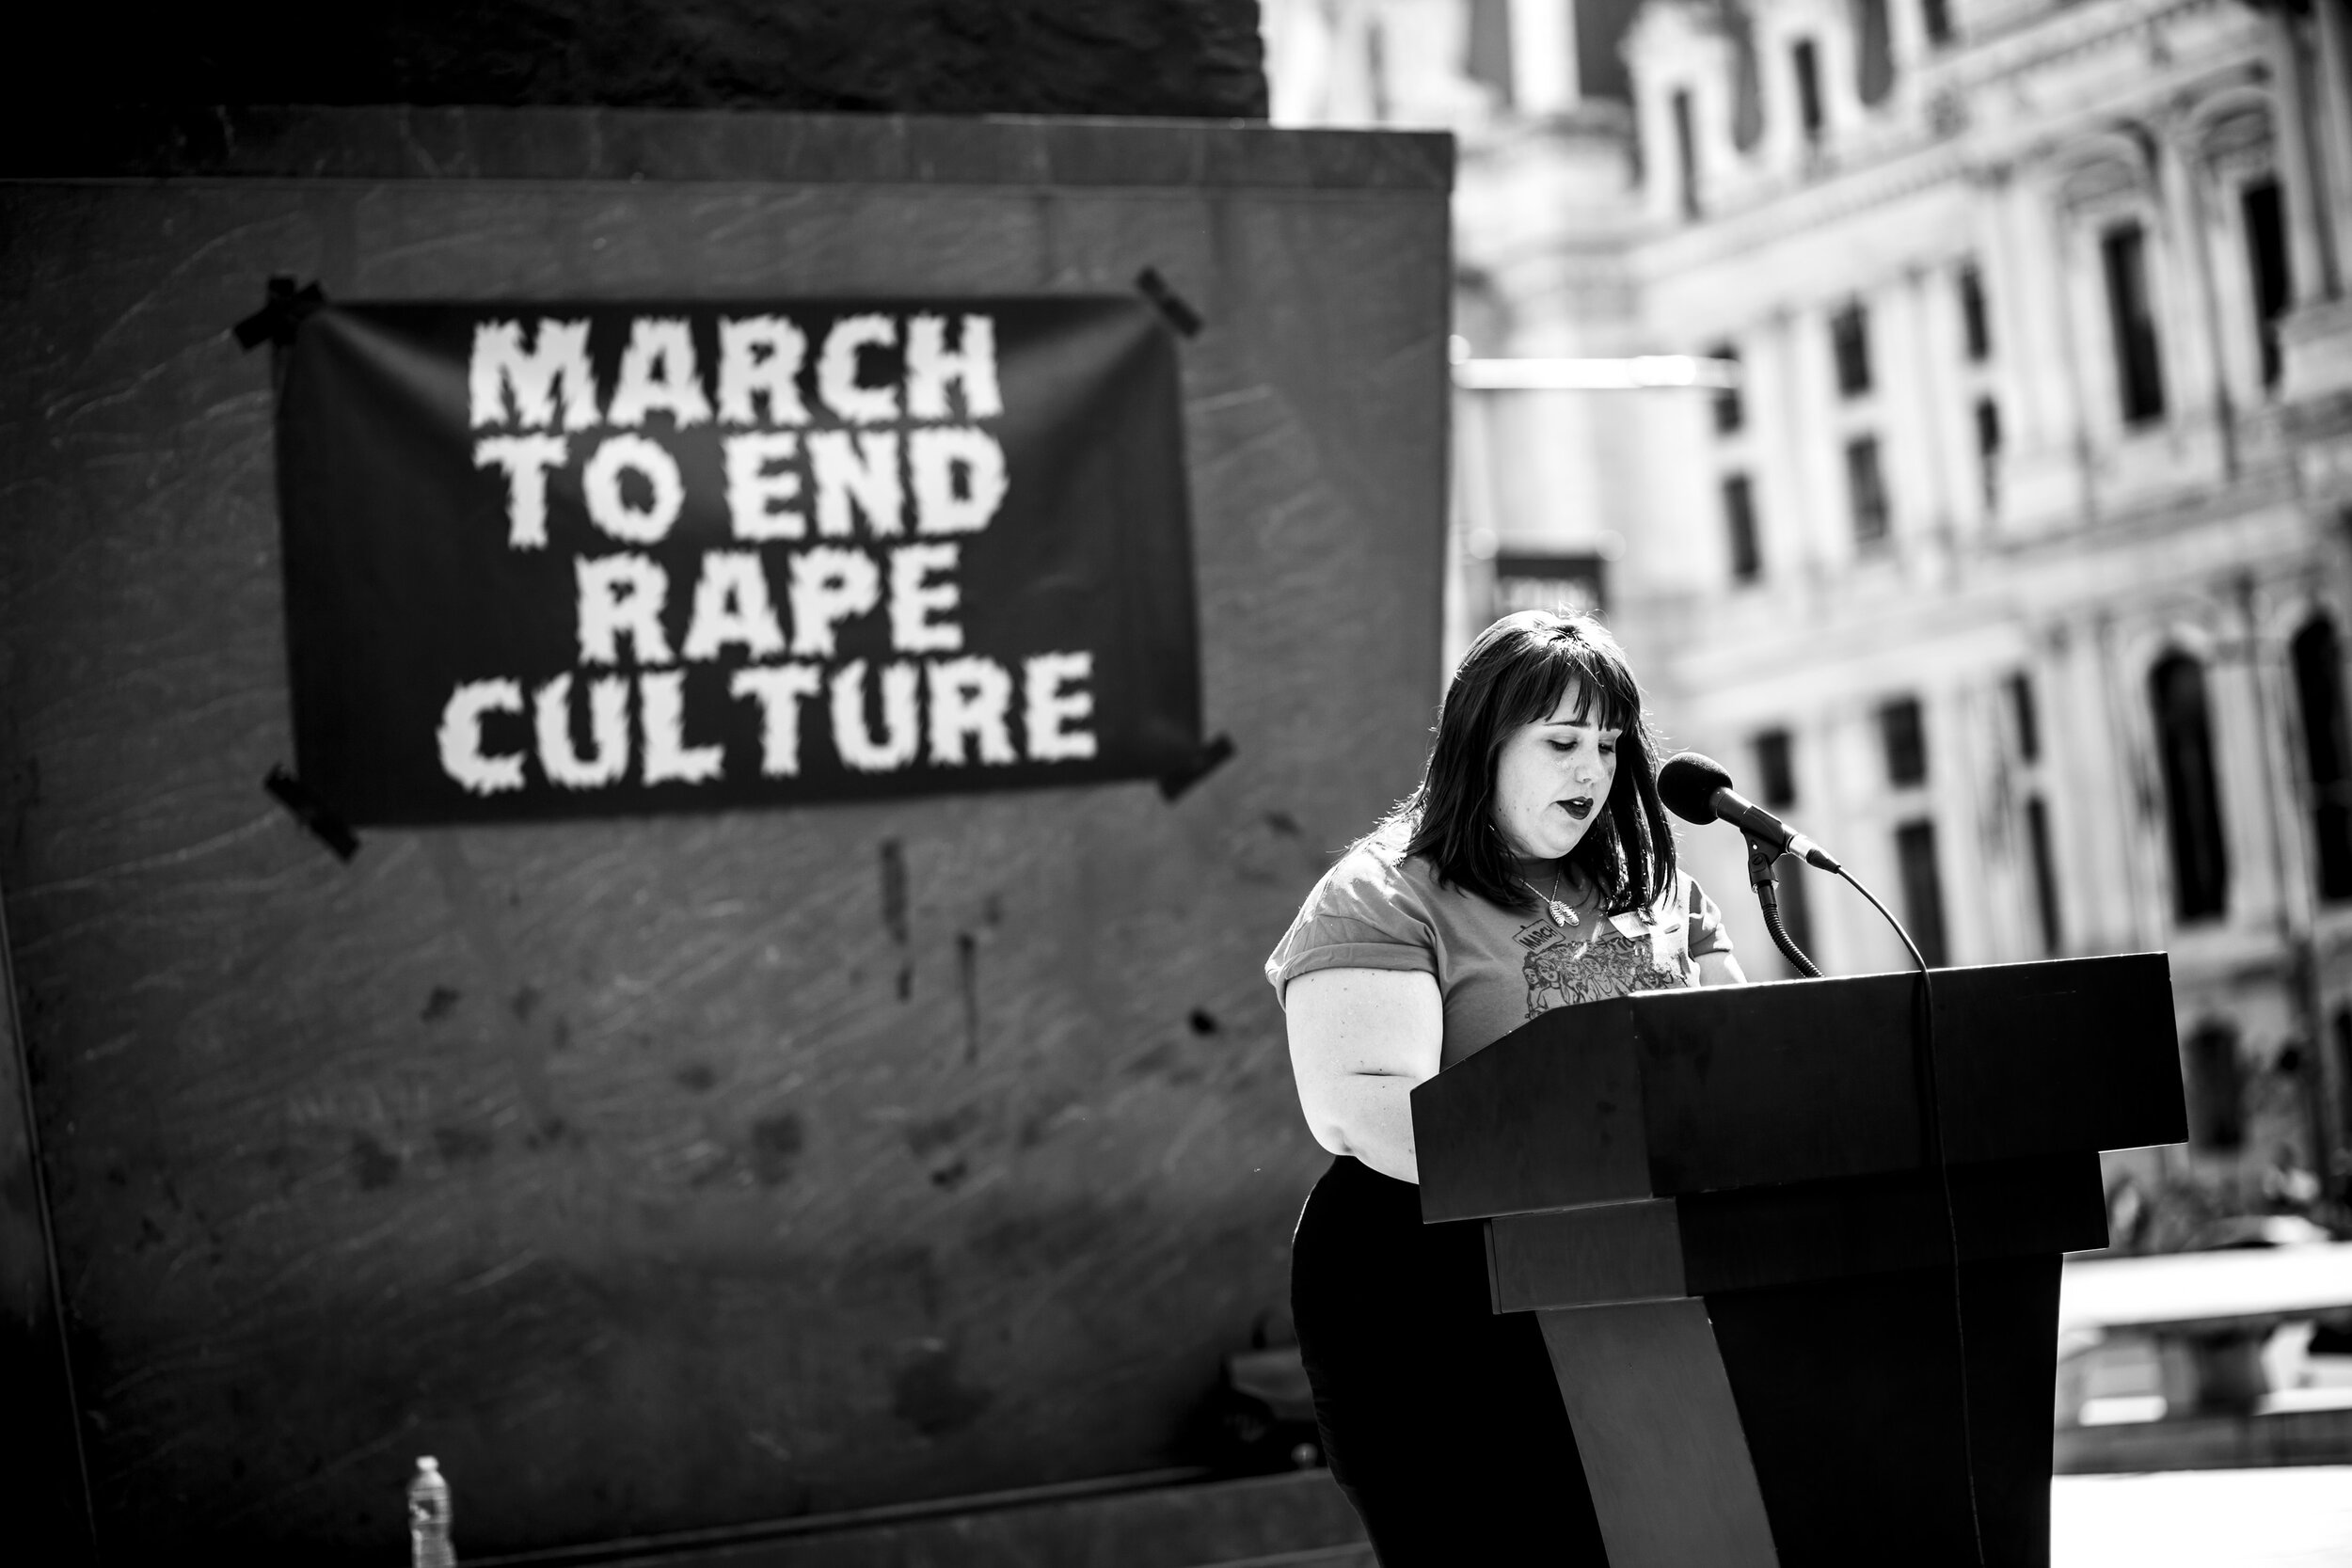 MarchToEndRapeCulture_2019_MikeArrison_BW_092919_0010.jpg